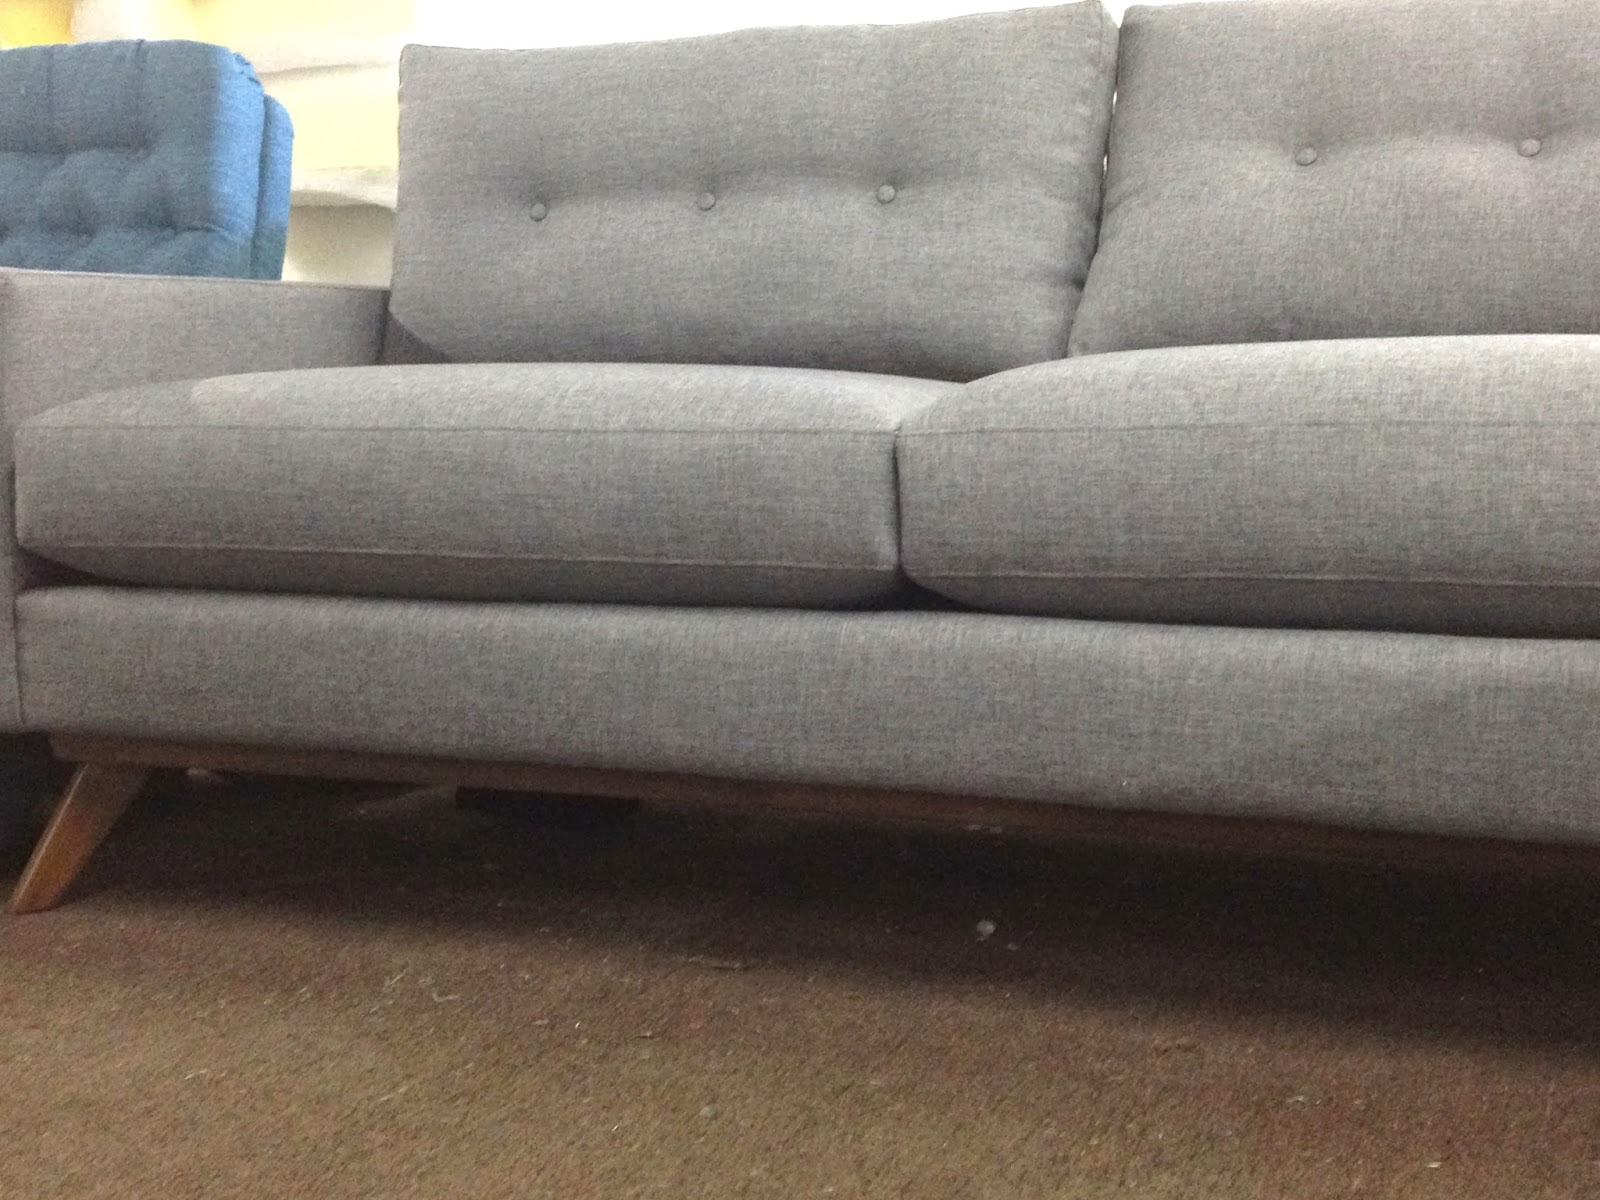 Rosa beltran design tales from the factory floor for Sofa actual